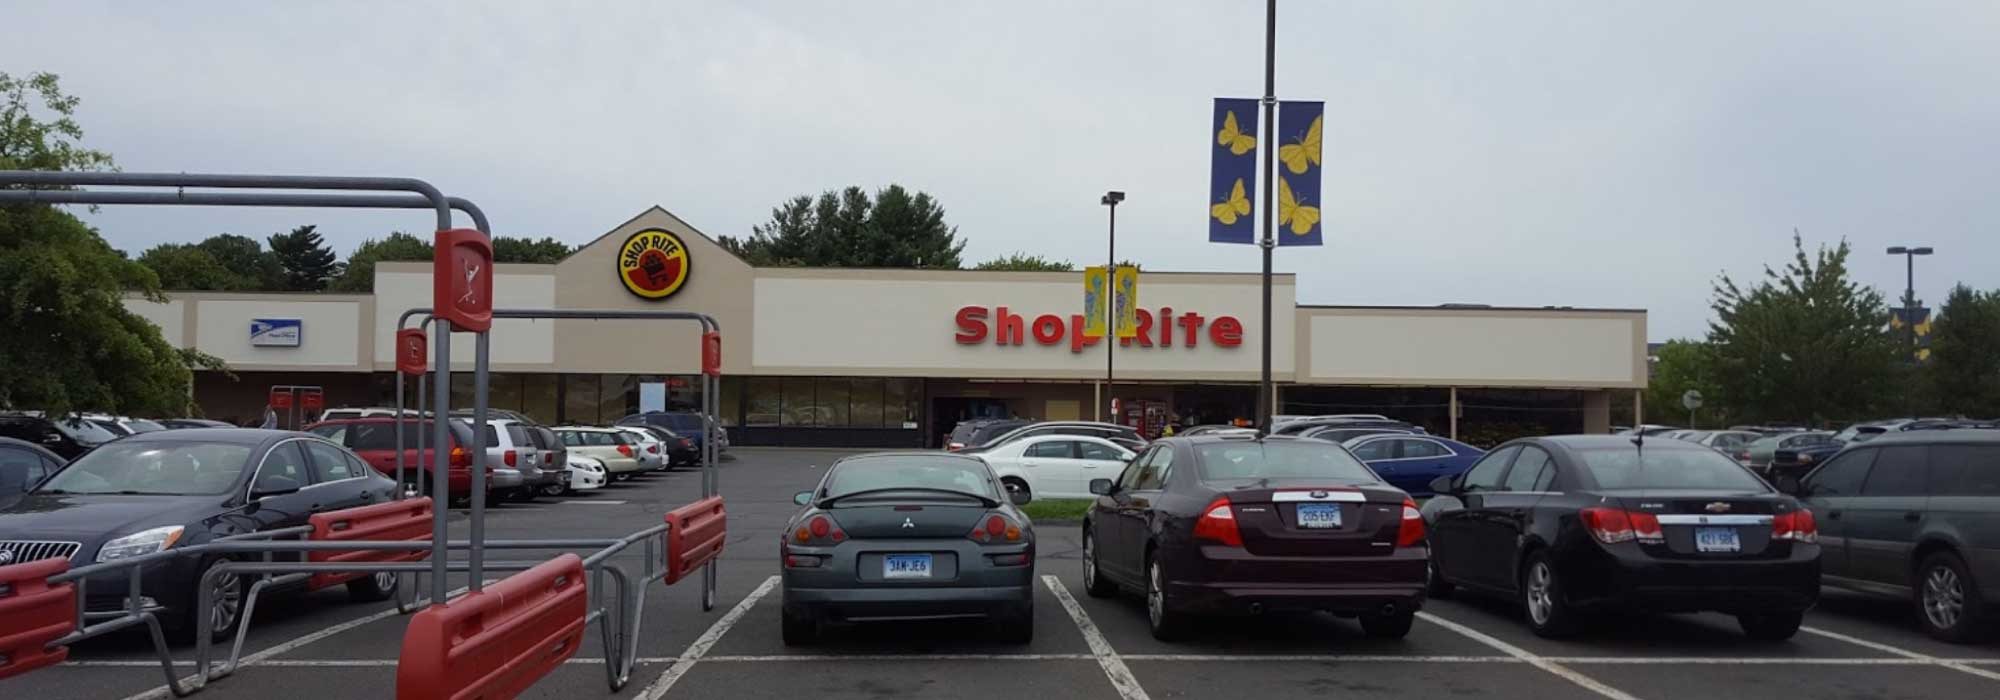 Bristol, Connecticut – Shop Rite Plaza